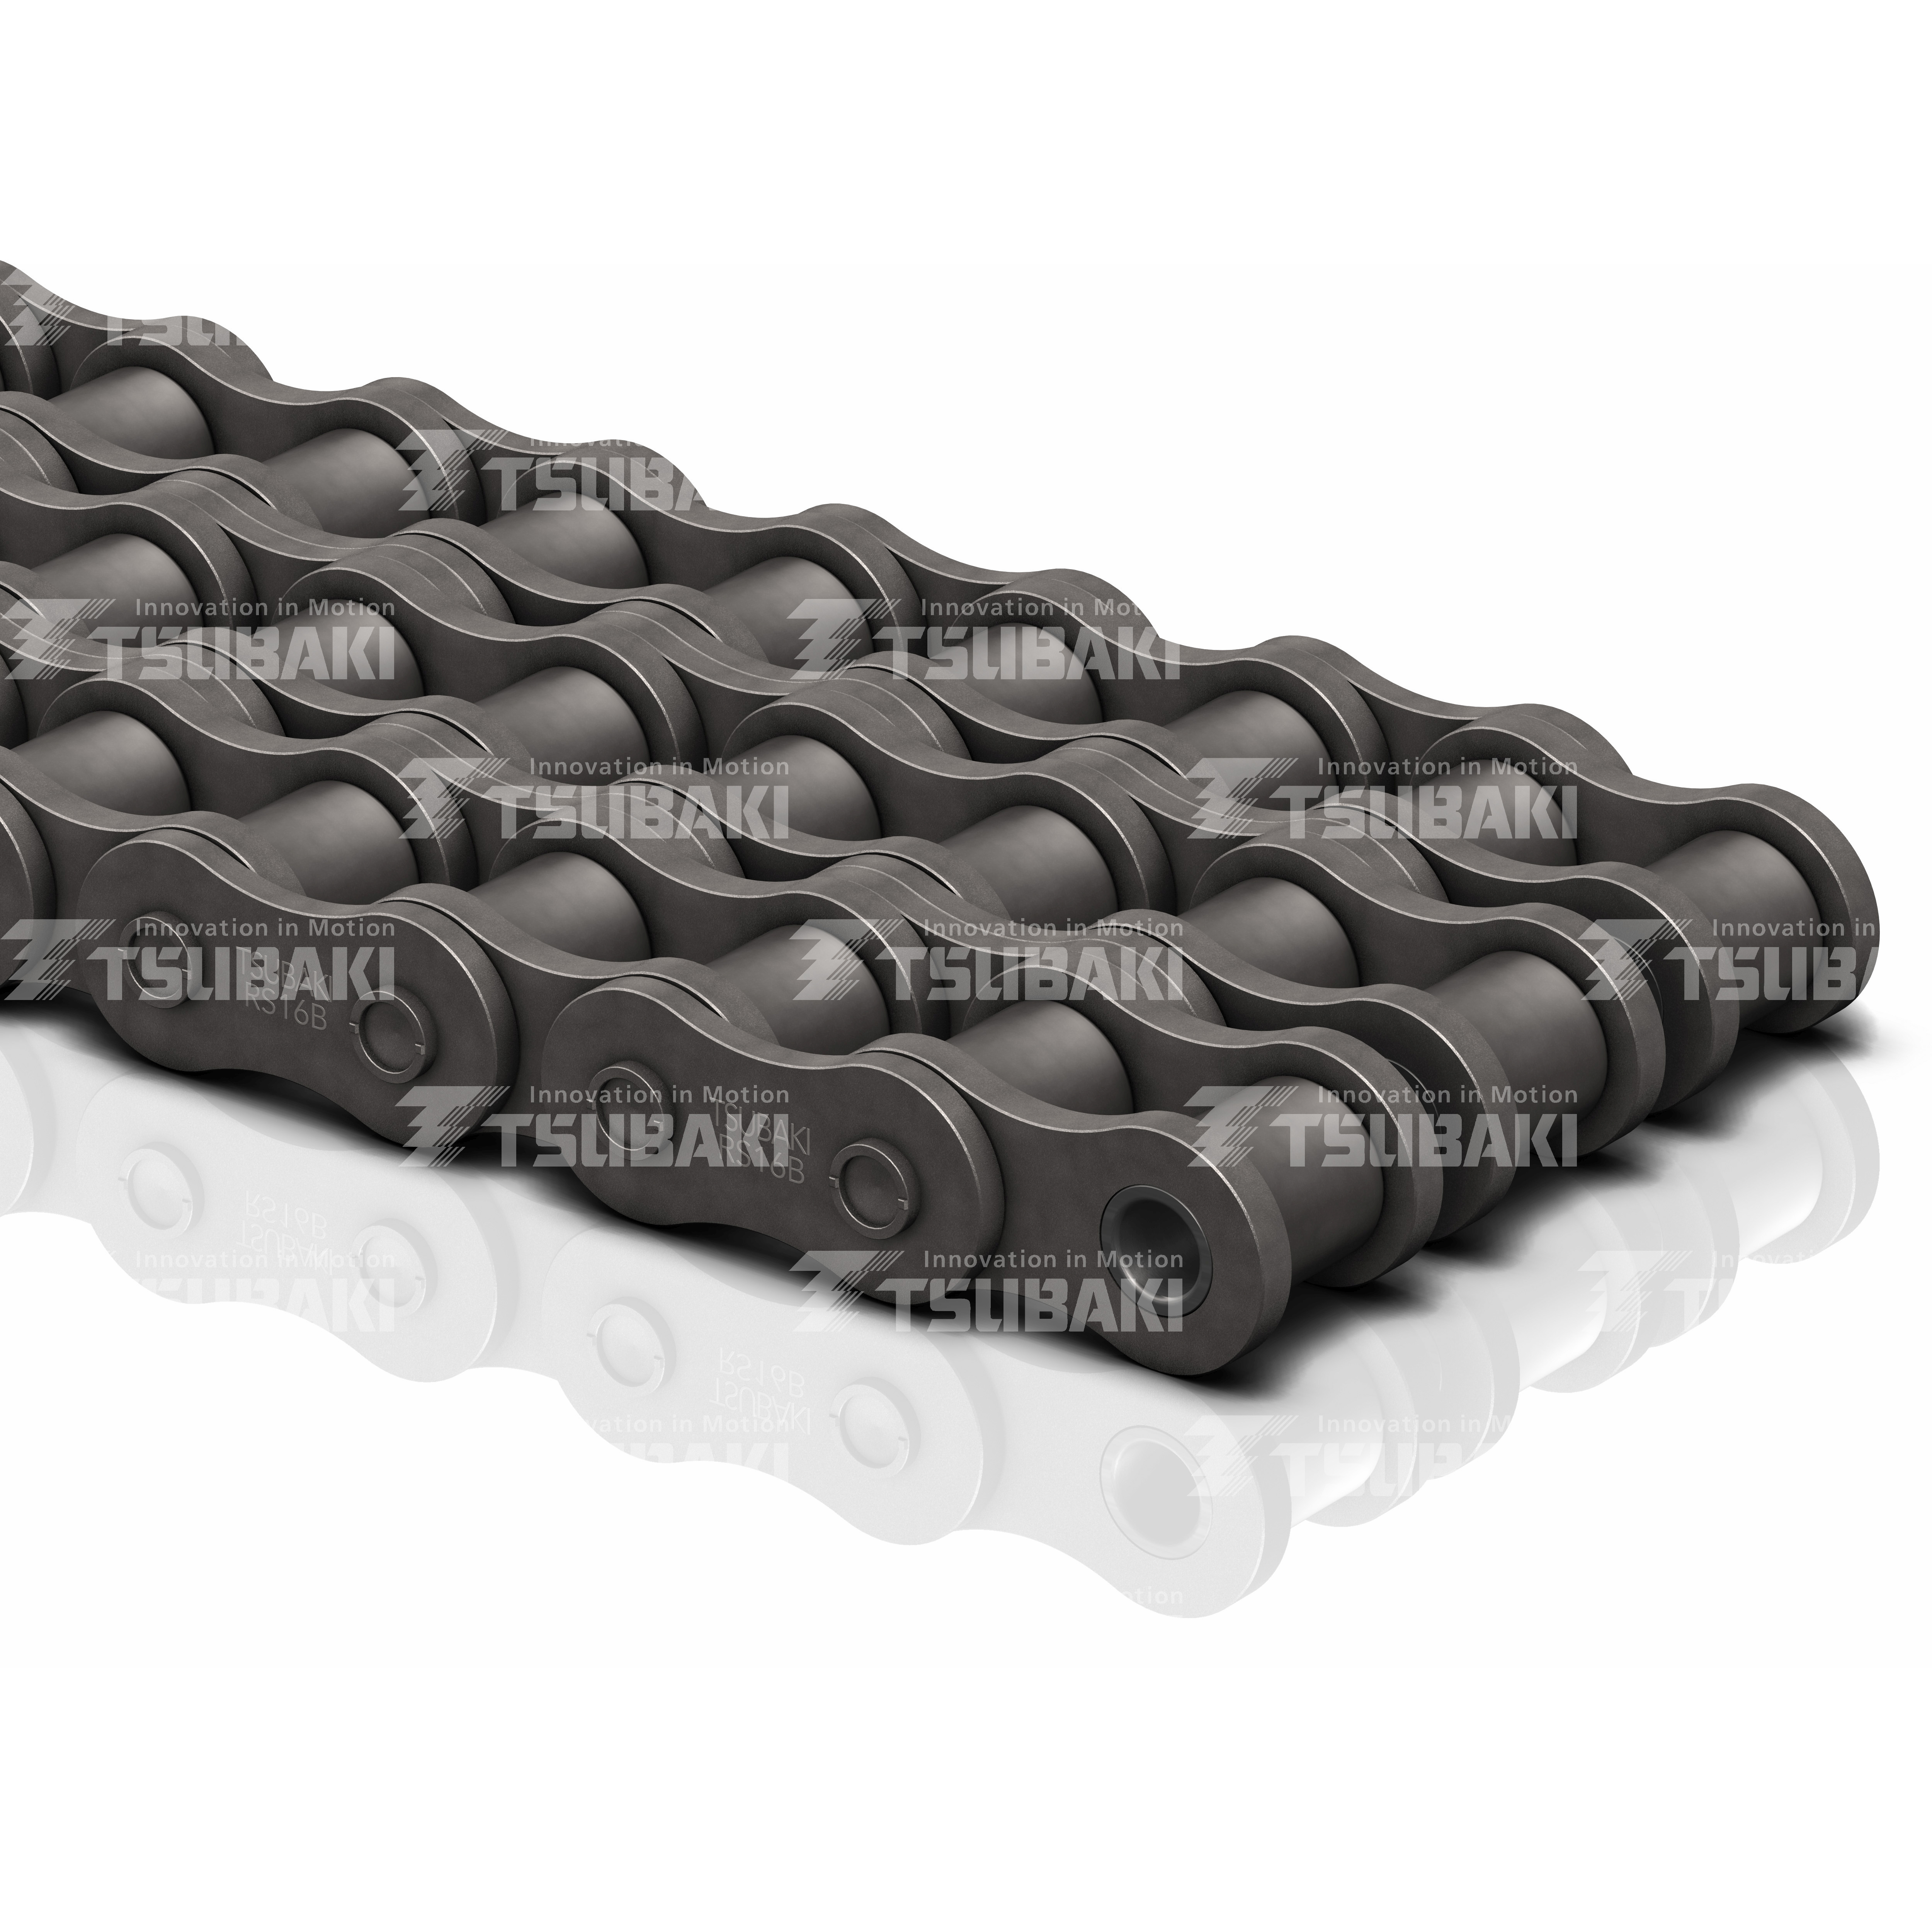 RS20B Triplex Chain 5 Metre Box